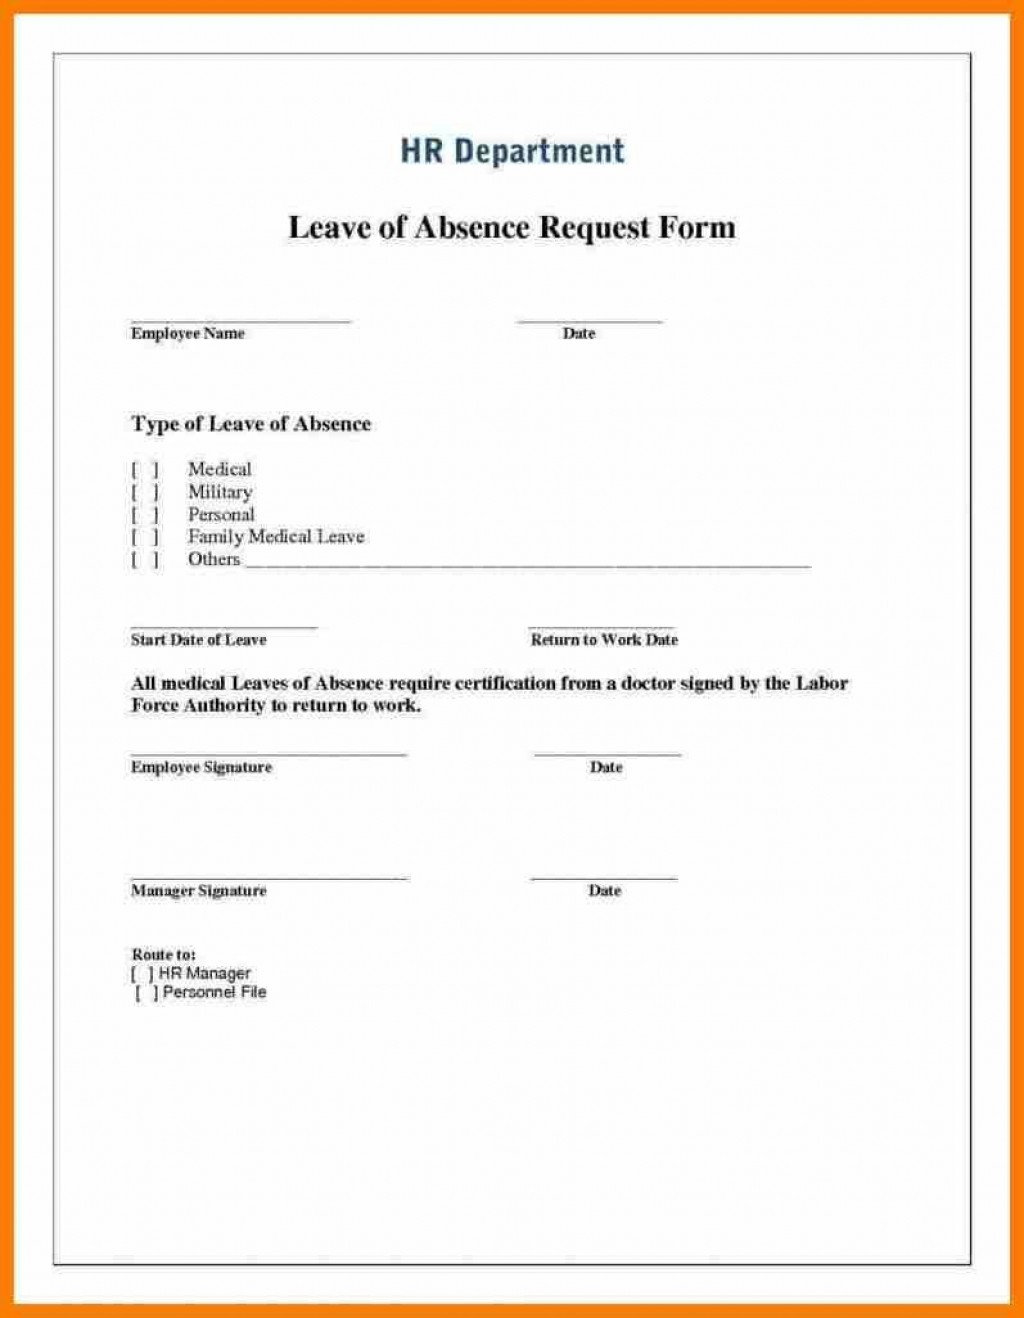 000 Wonderful Leave Of Absence Form Template Photo  Medical Request FreeLarge